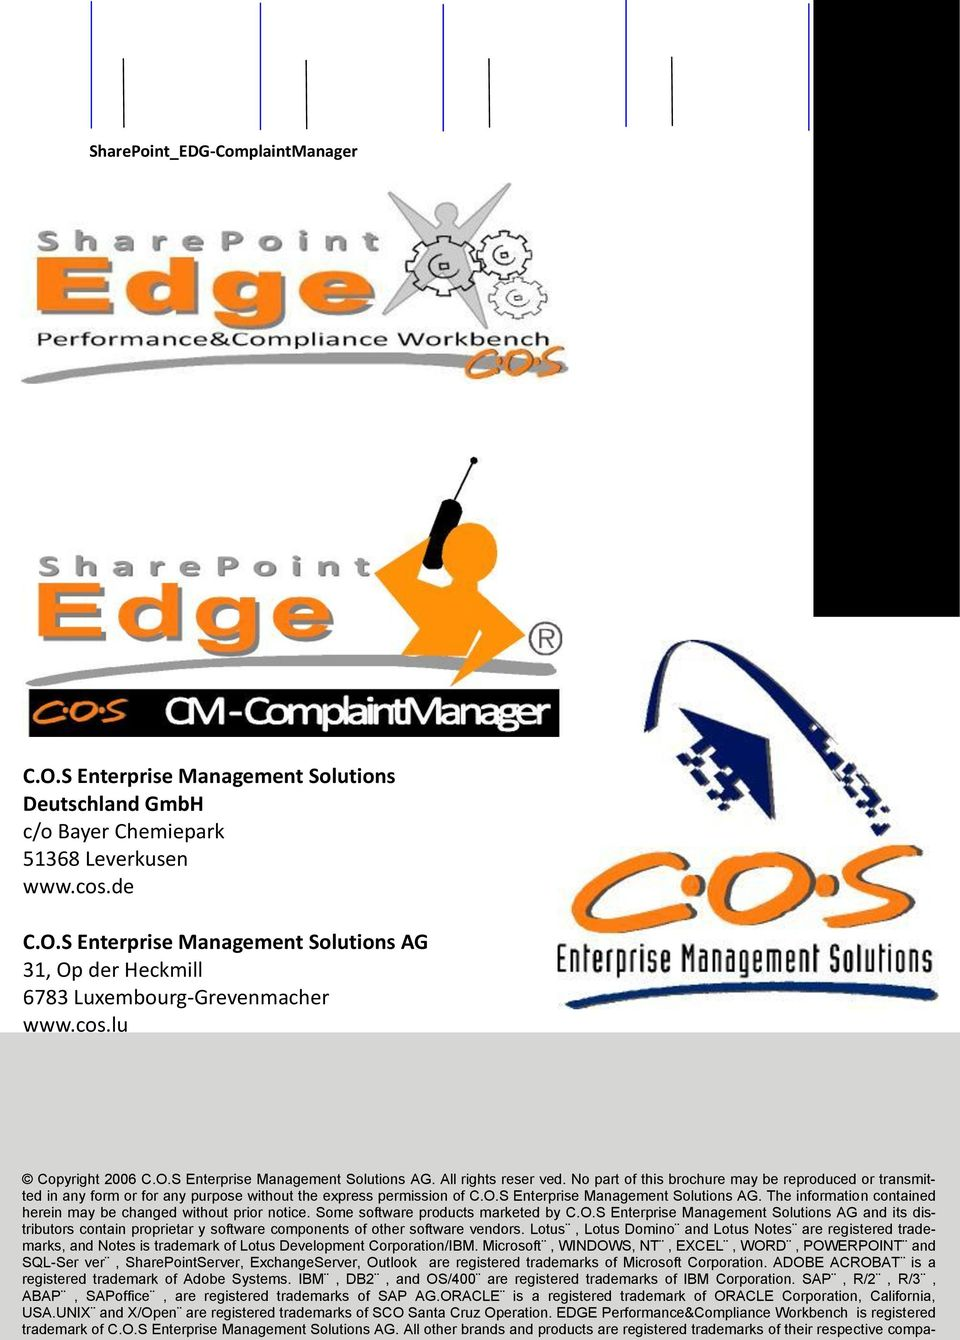 No part of this brochure may be reproduced or transmitted in any form or for any purpose without the express permission of C.O.S Enterprise Management Solutions AG.